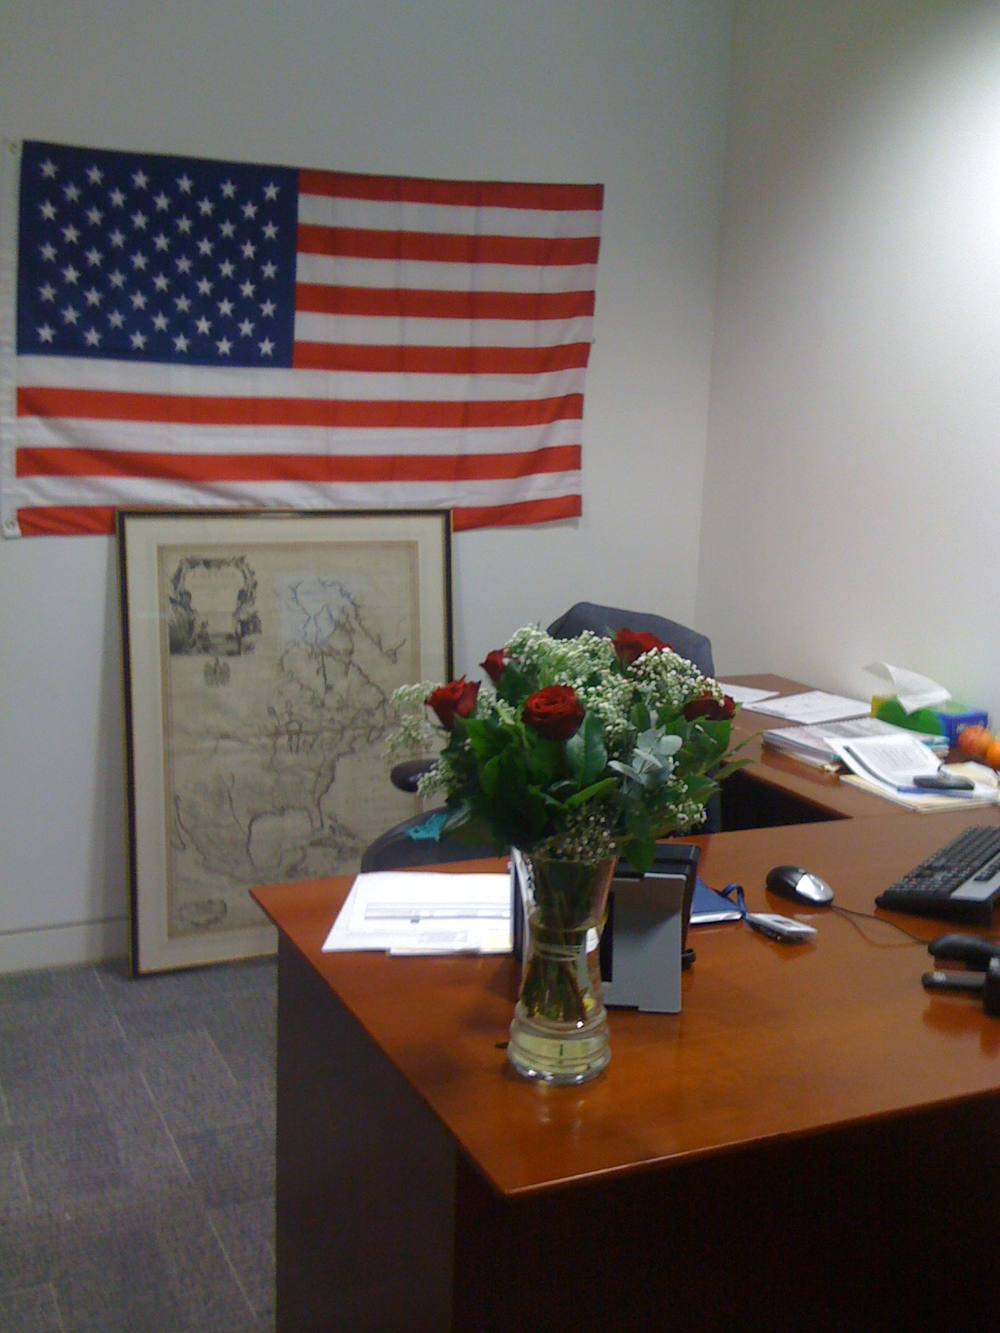 my old office - making sure everyone knew I am American!